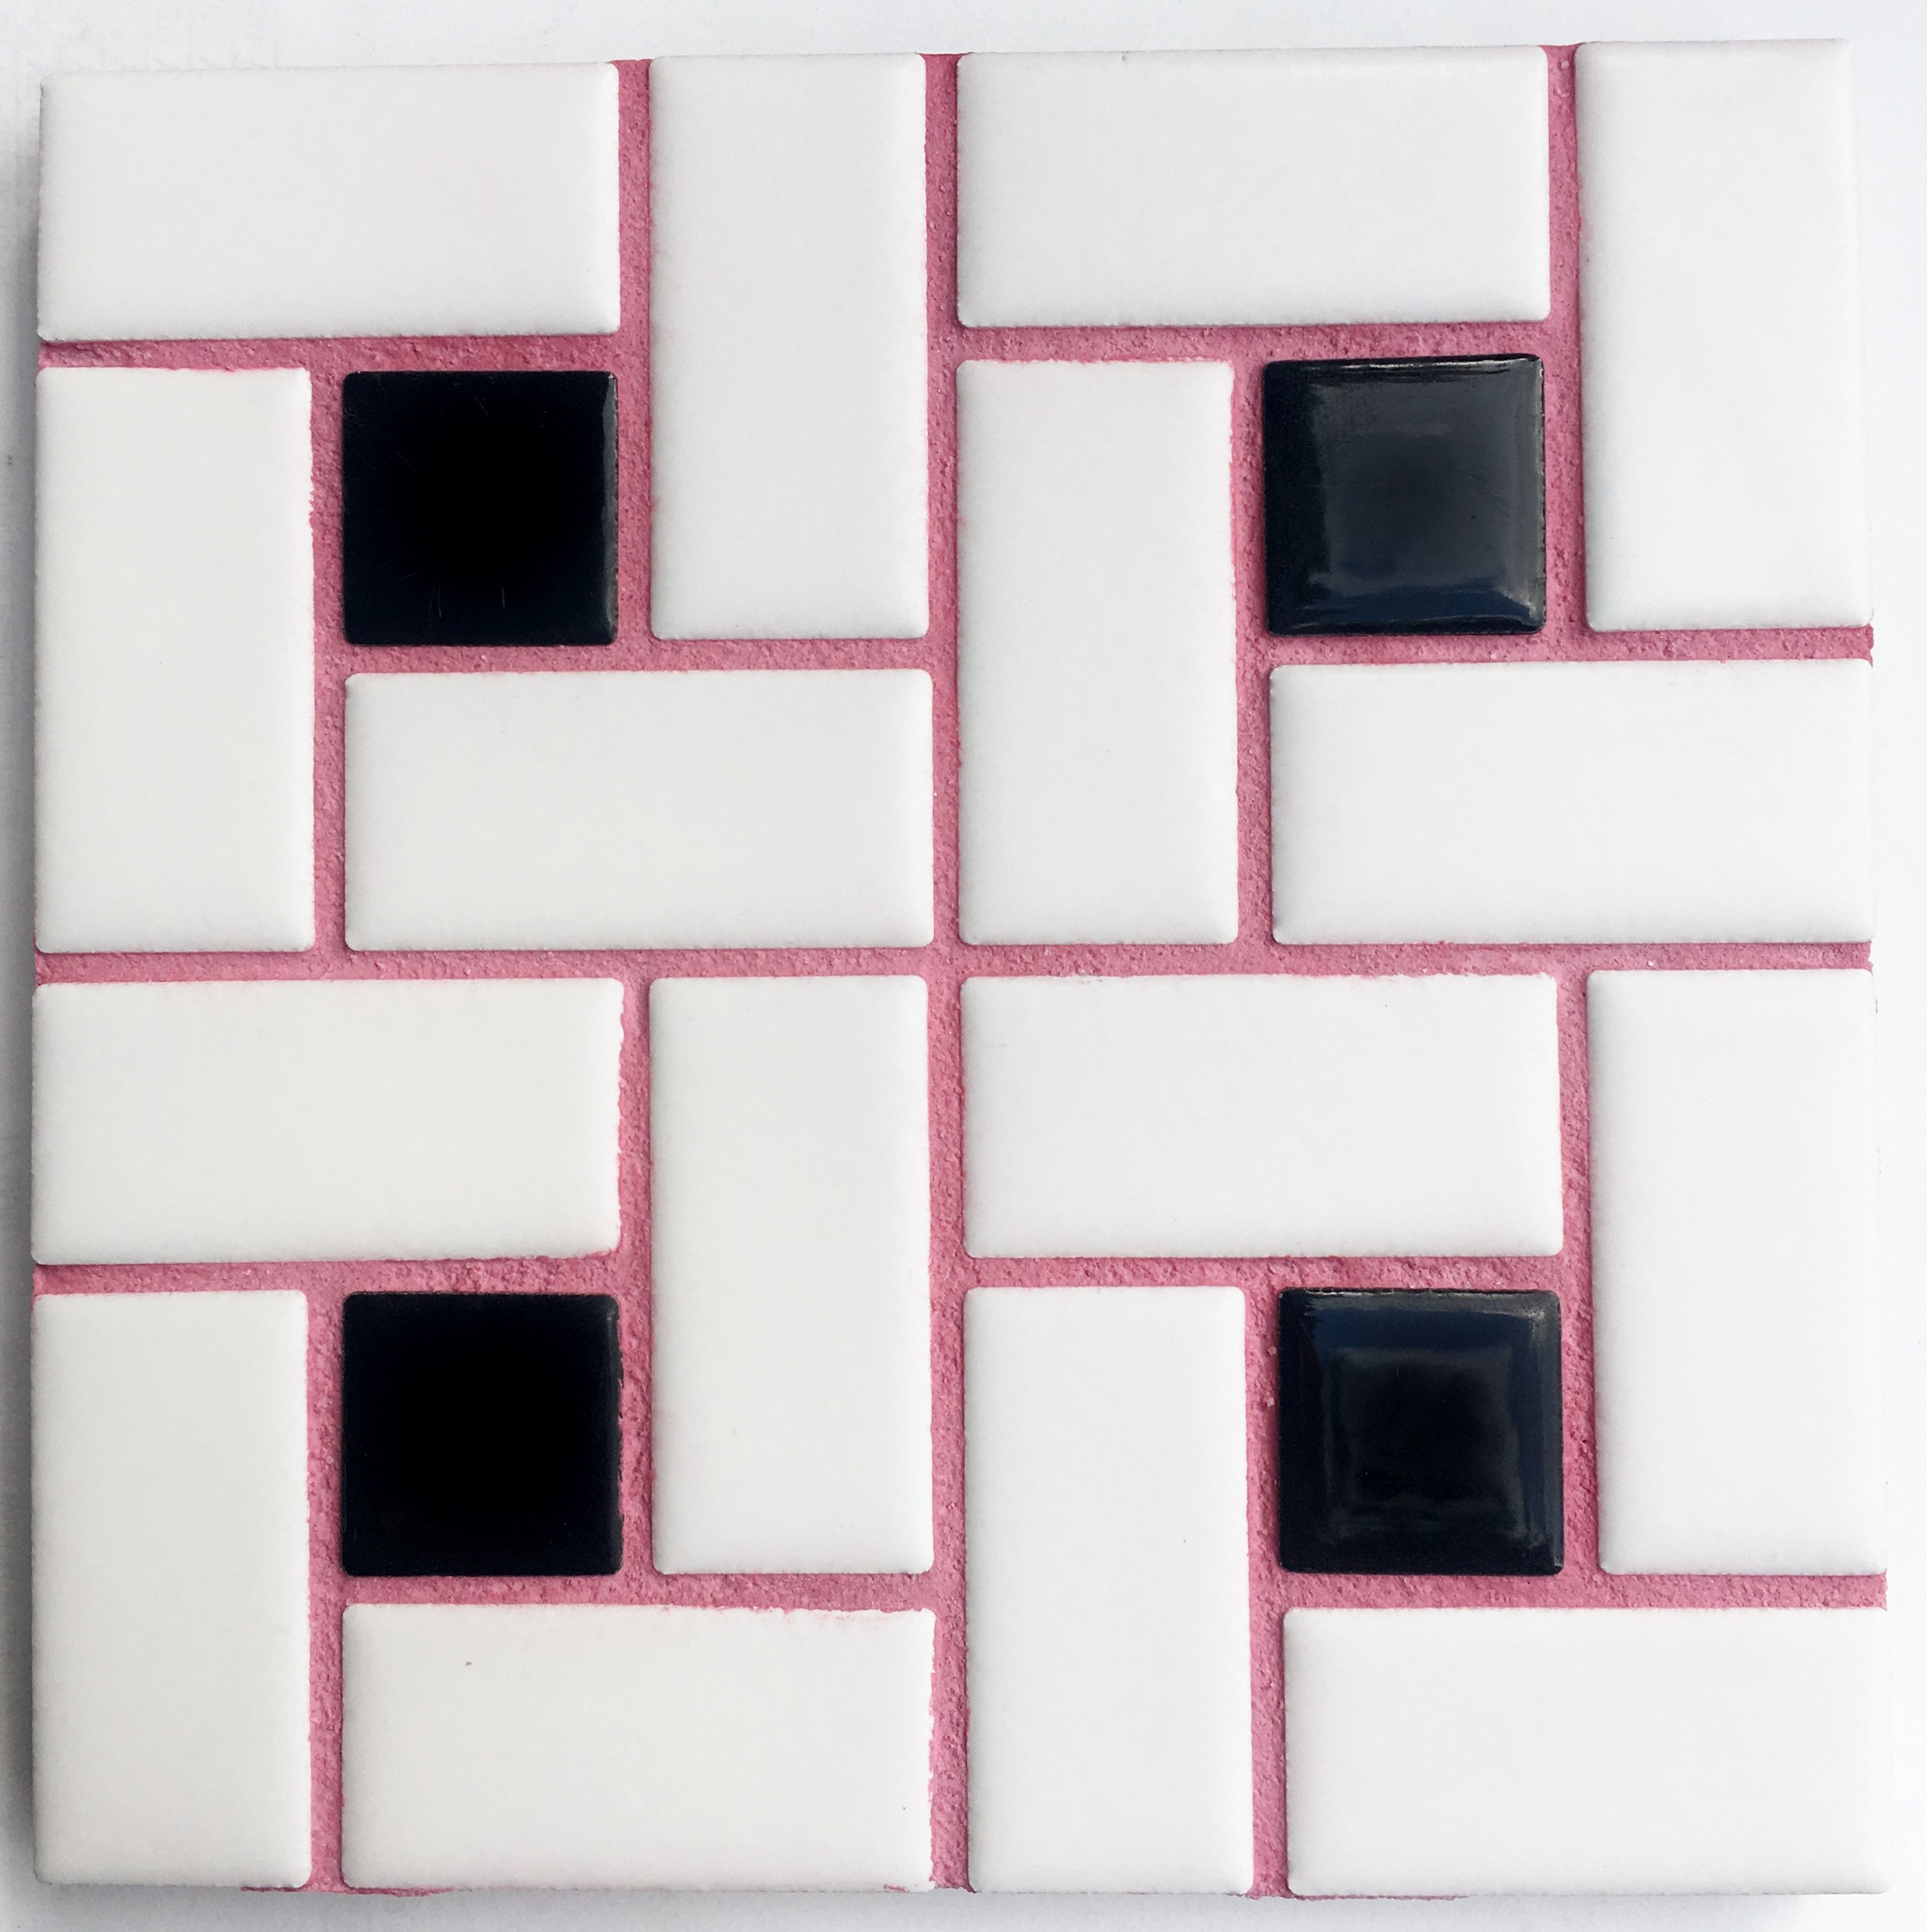 Unsanded Raspberry Gum Tile Grout - Pink/Mauve Grout